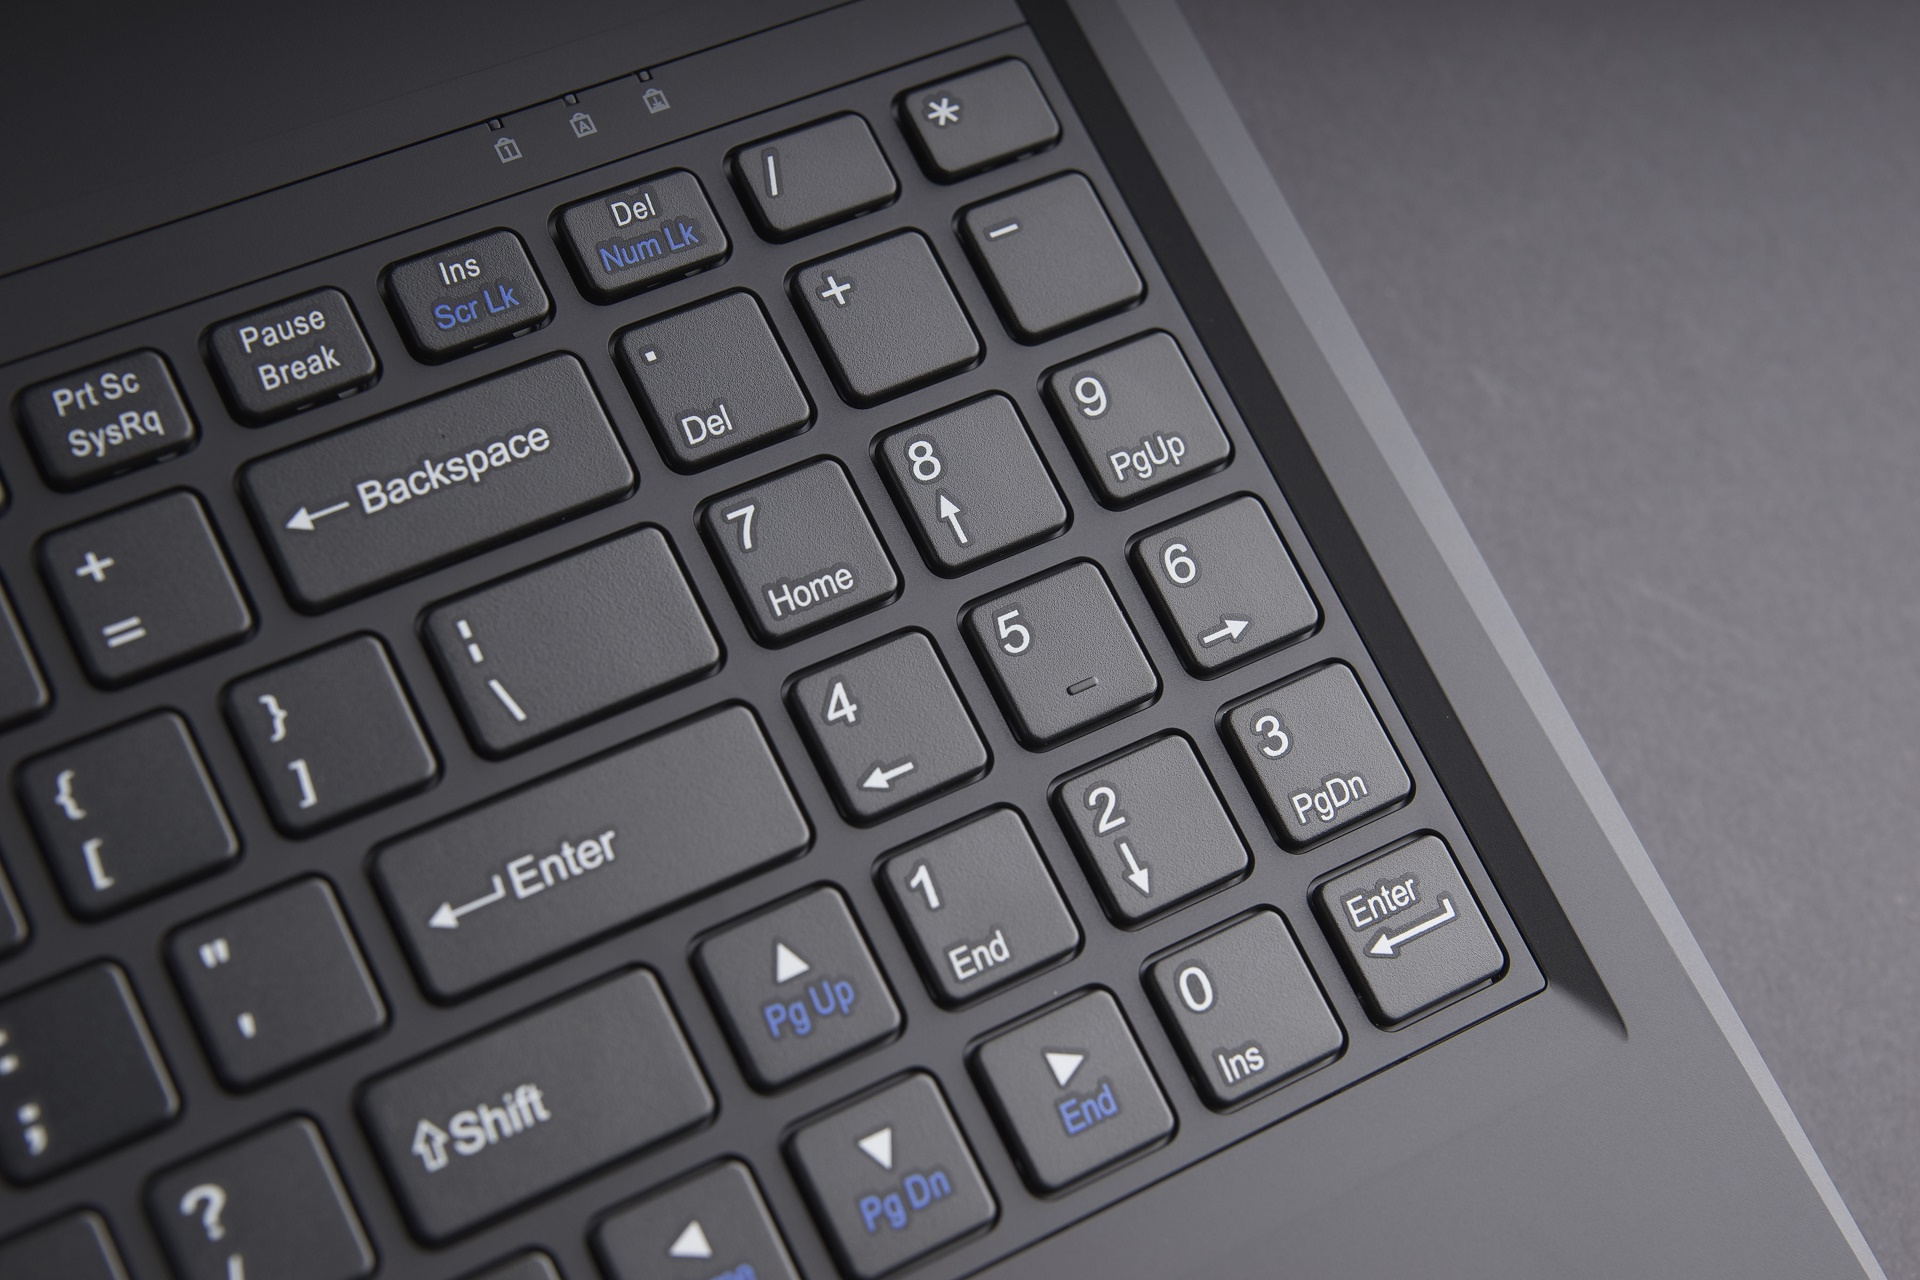 4. Full-range chiclet keyboard with independent numeric pad